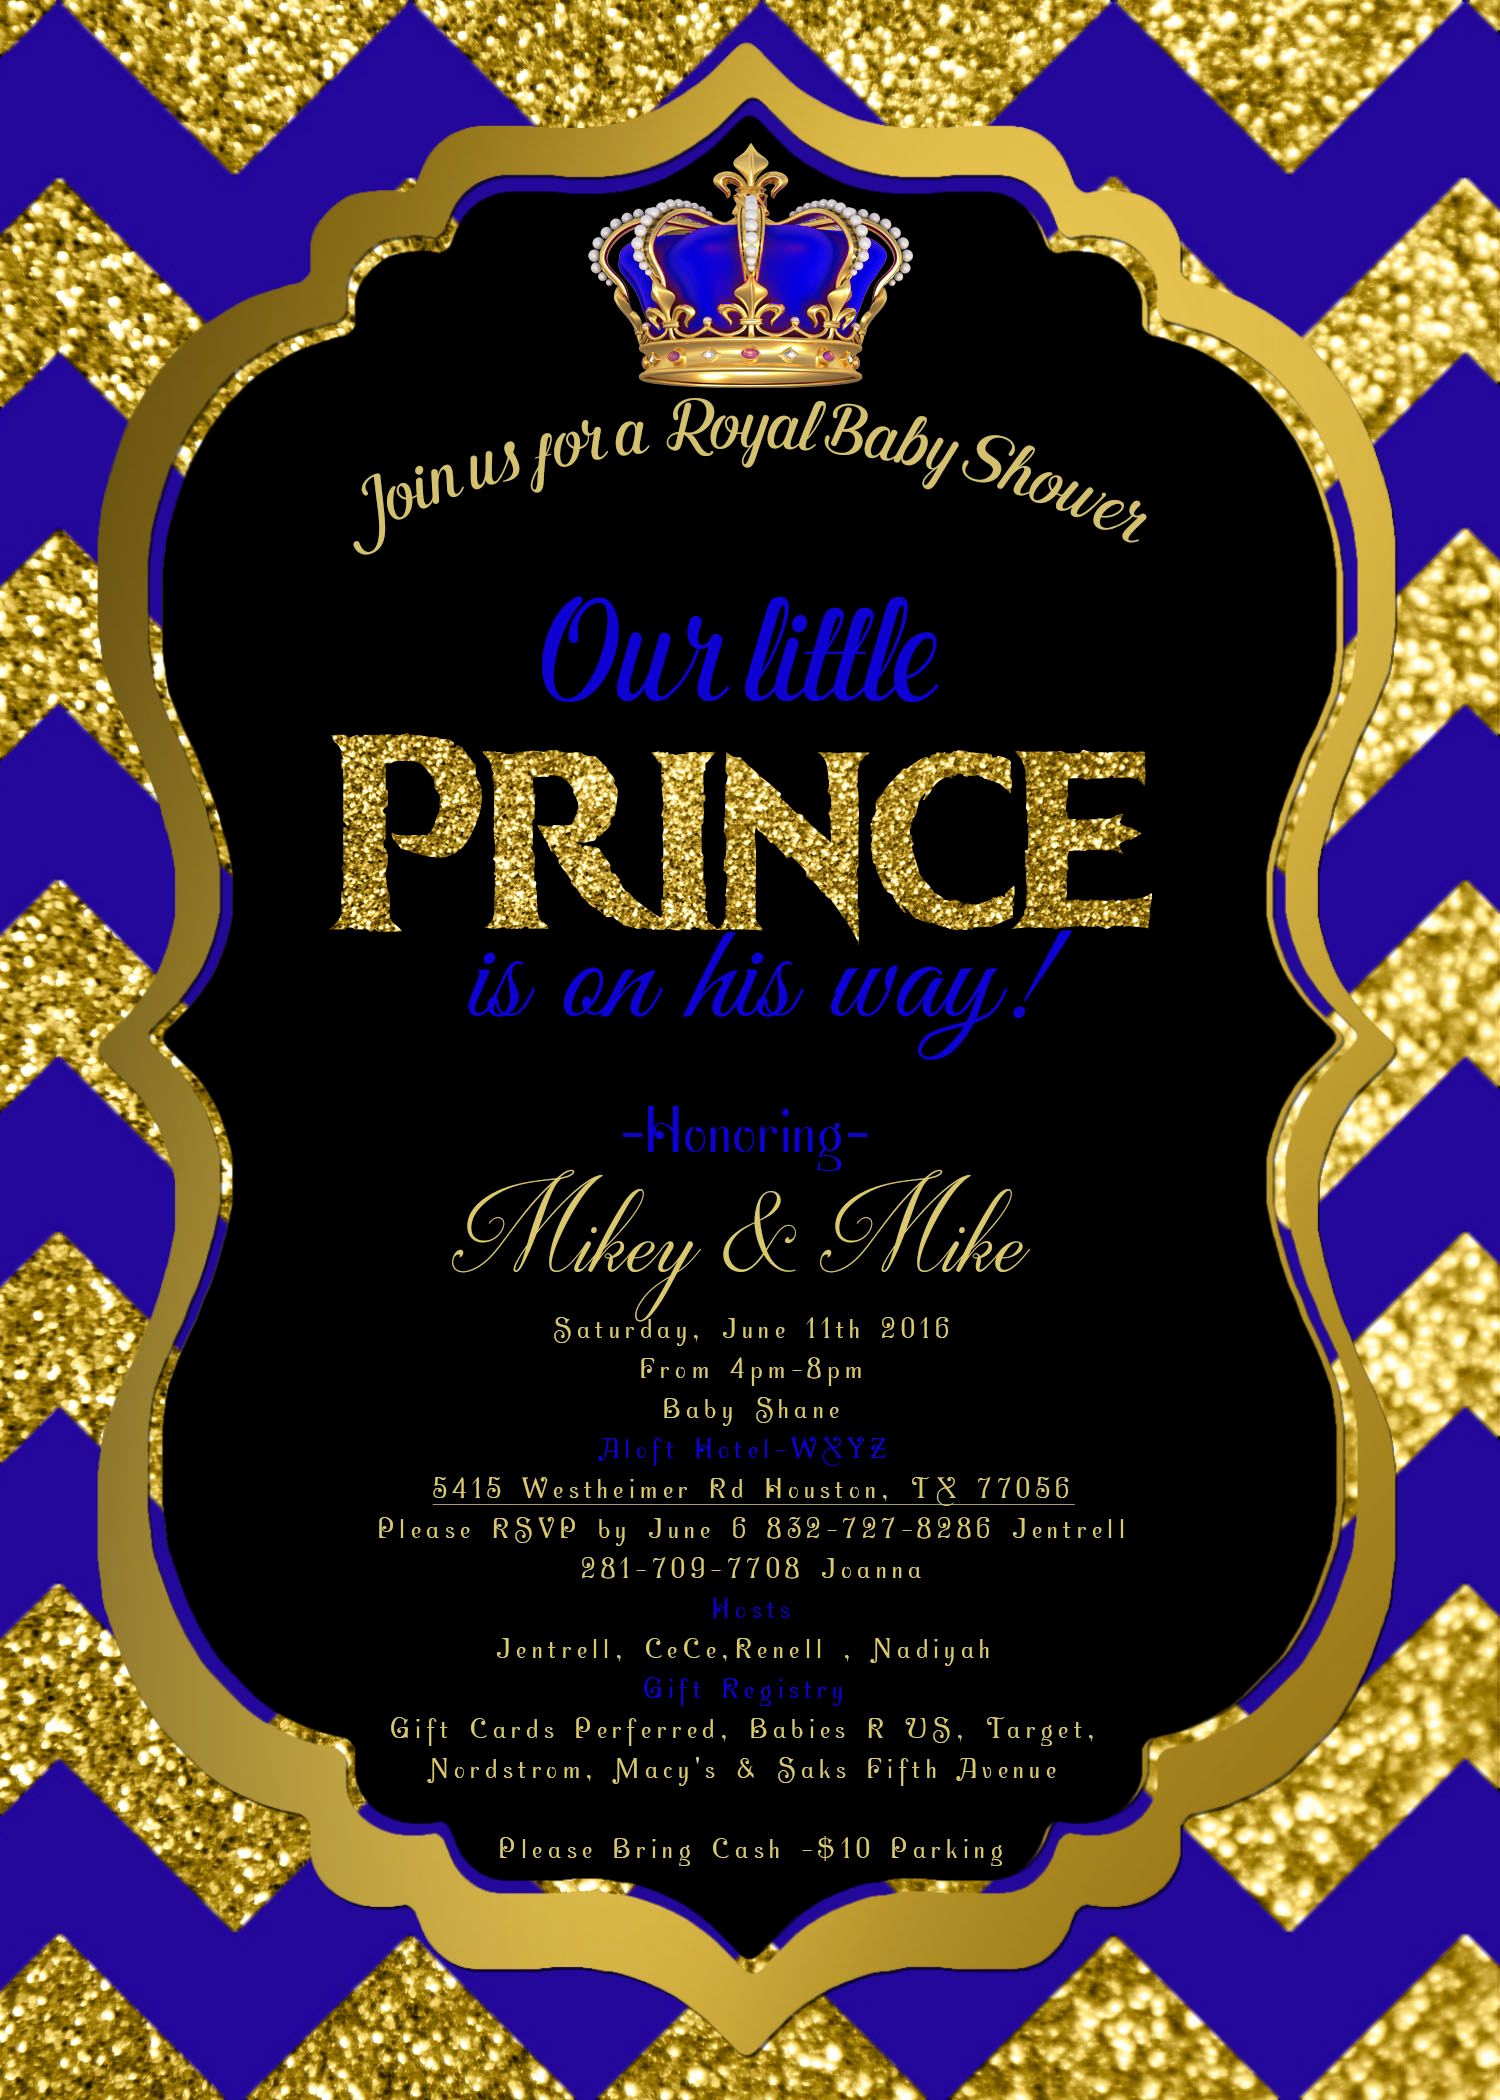 Royal Baby Shower Invitation Wording Lovely Royal Baby Shower Invitation Royal Prince Invite